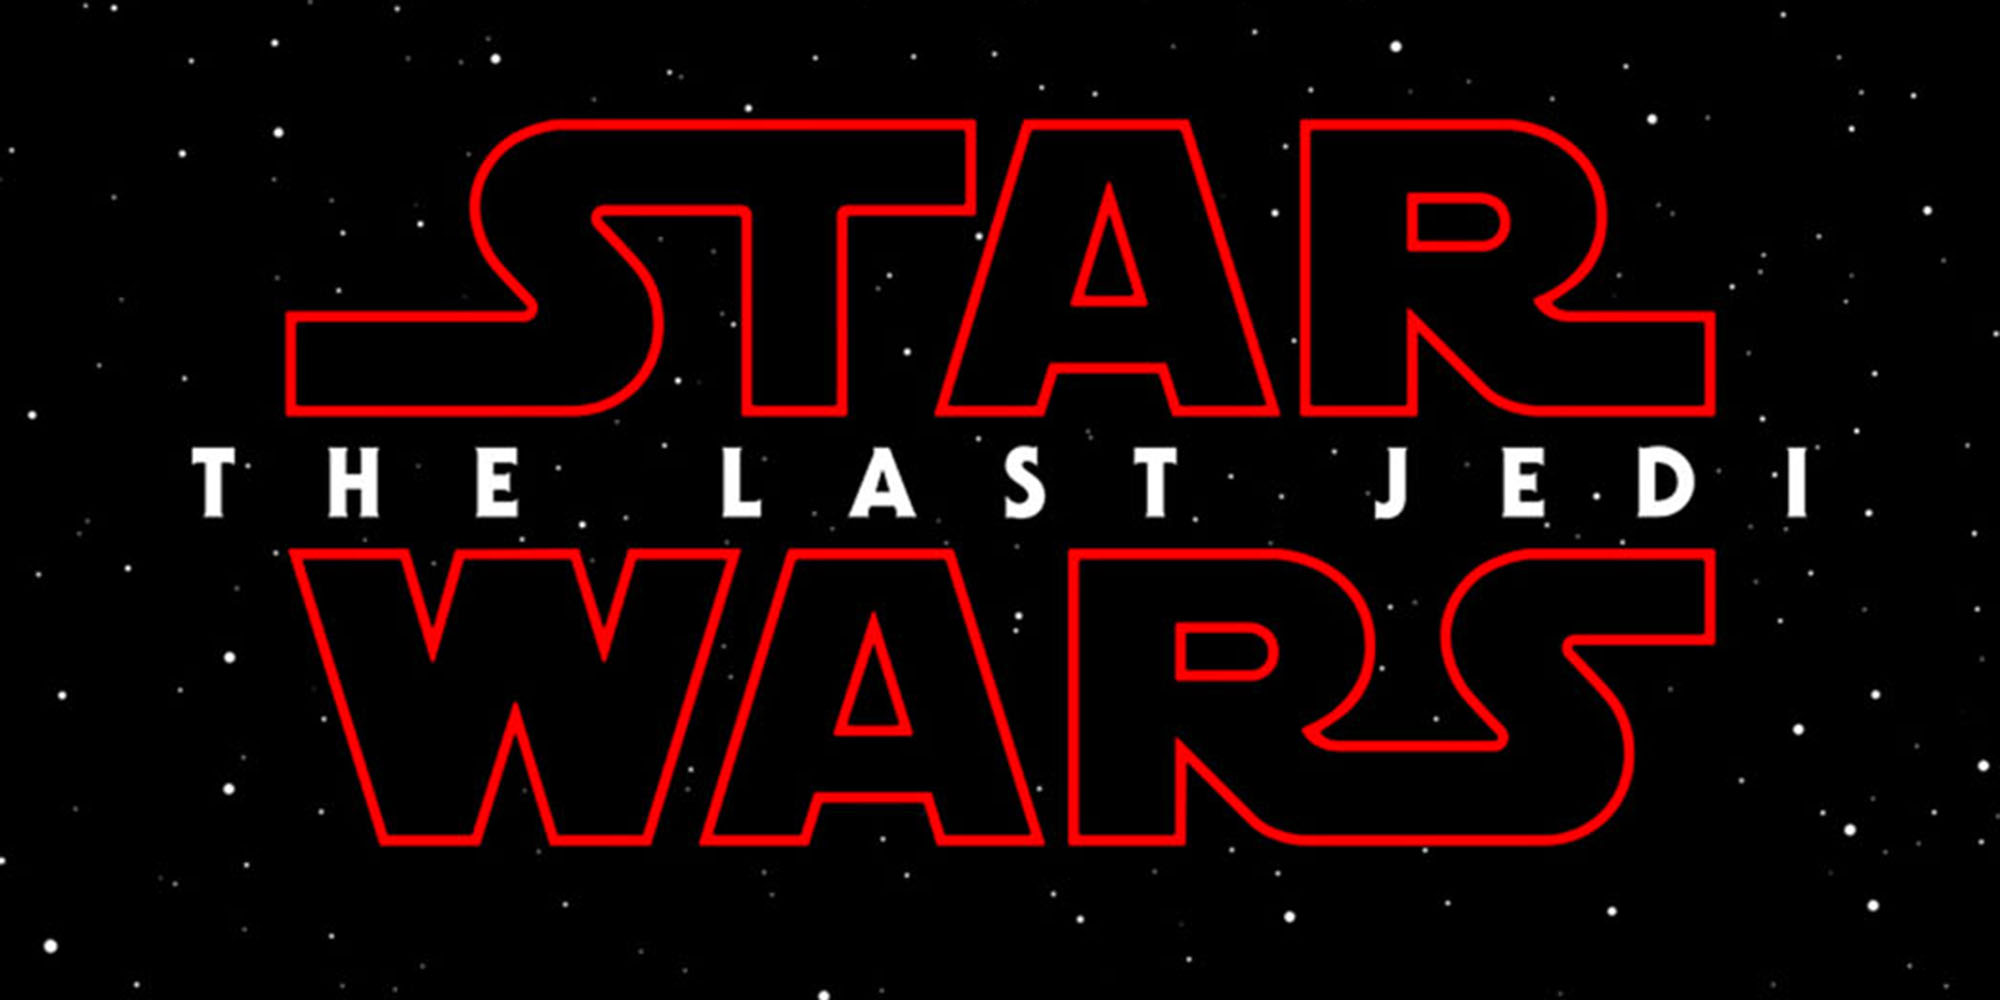 Star Wars The Last Jedi plakat.jpg